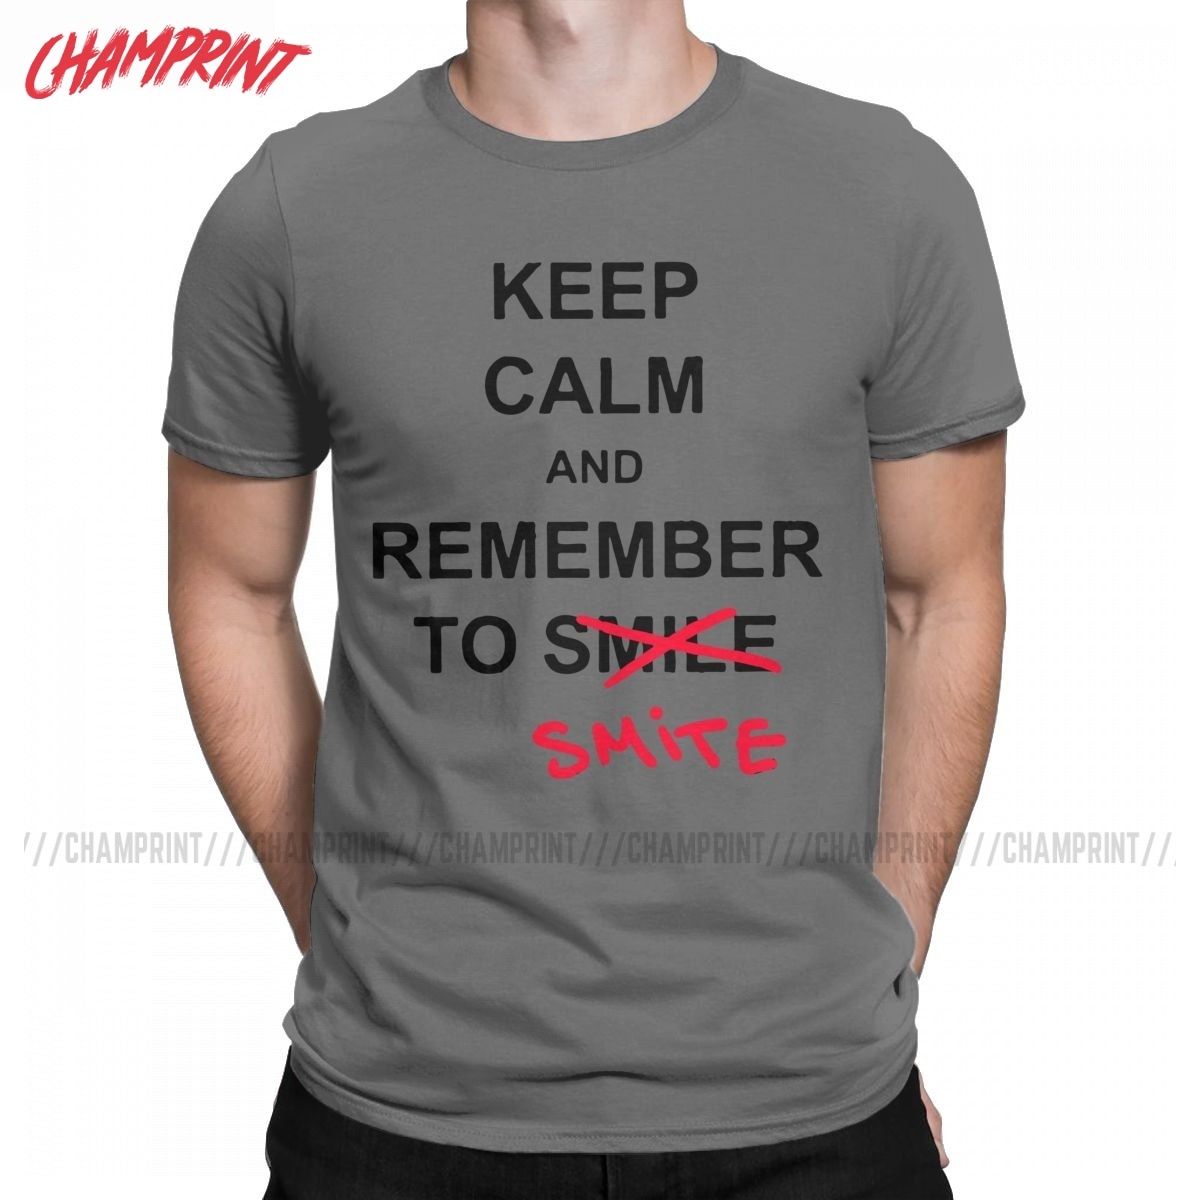 Vintage Keep Calm And Remember To Smile T-Shirt for Men O Neck 100% Cotton T Shirts Short Sleeve Tees Gift Idea Tops